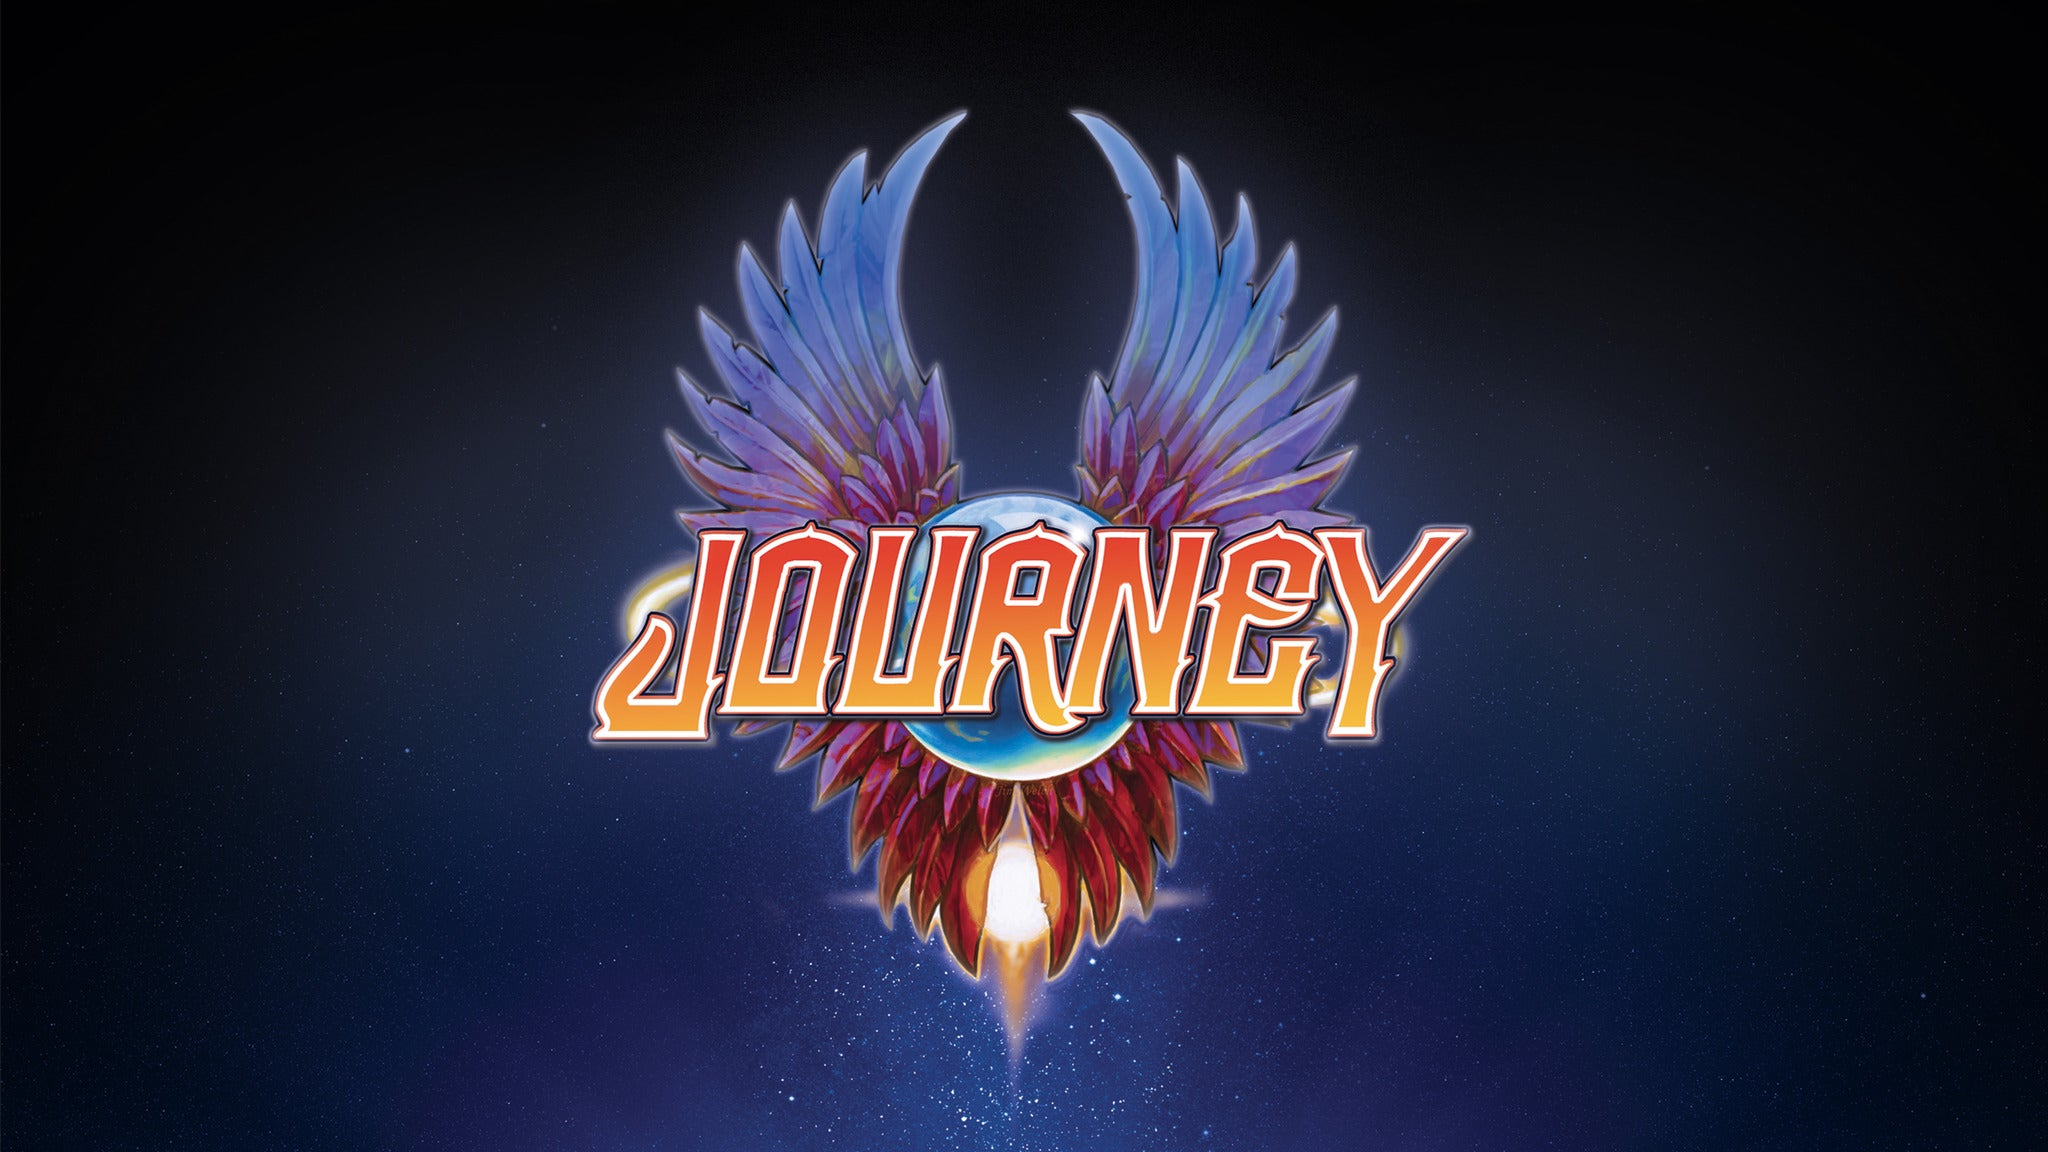 Journey at Neal S Blaisdell Arena